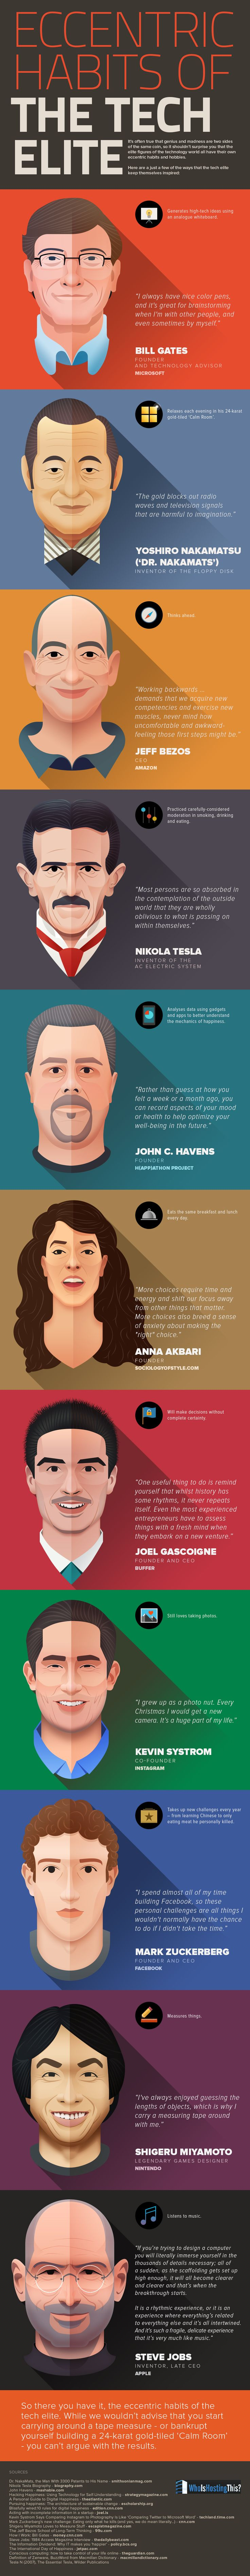 This is funny--Eccentric Habits of Tech Geniuses http://elearninginfographics.com/eccentric-habits-tech-geniuses-infographic/